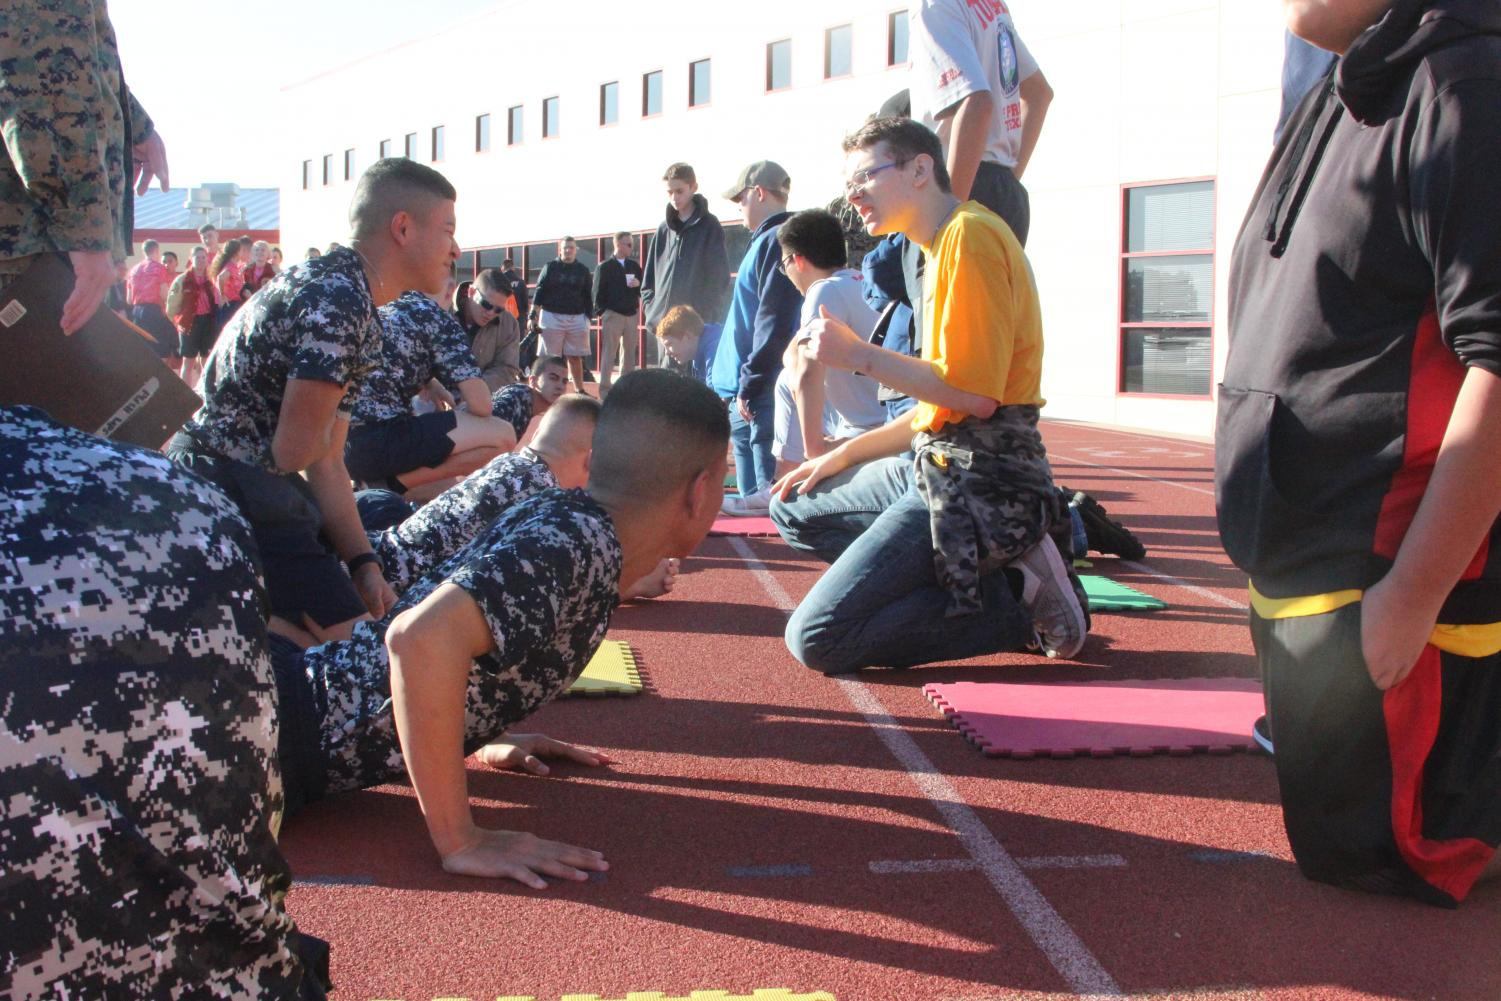 There are many different parts of an ROTC competition, including PT (physical training), as shown above.